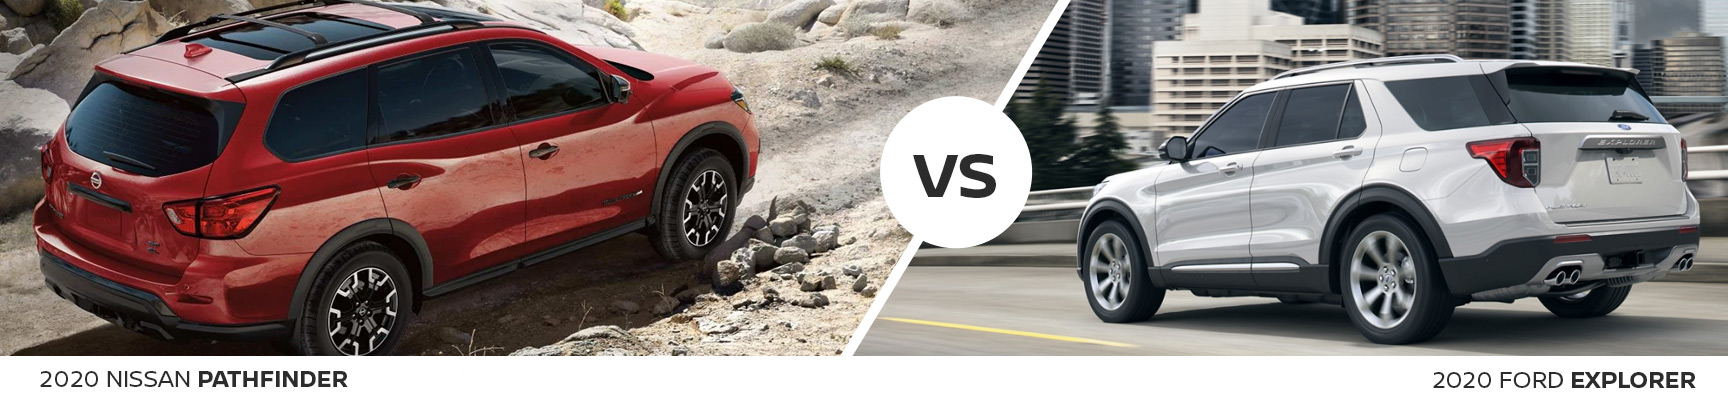 Crossover SUV Comparison: 2020 Nissan Pathfinder Vs 2020 Ford Explorer